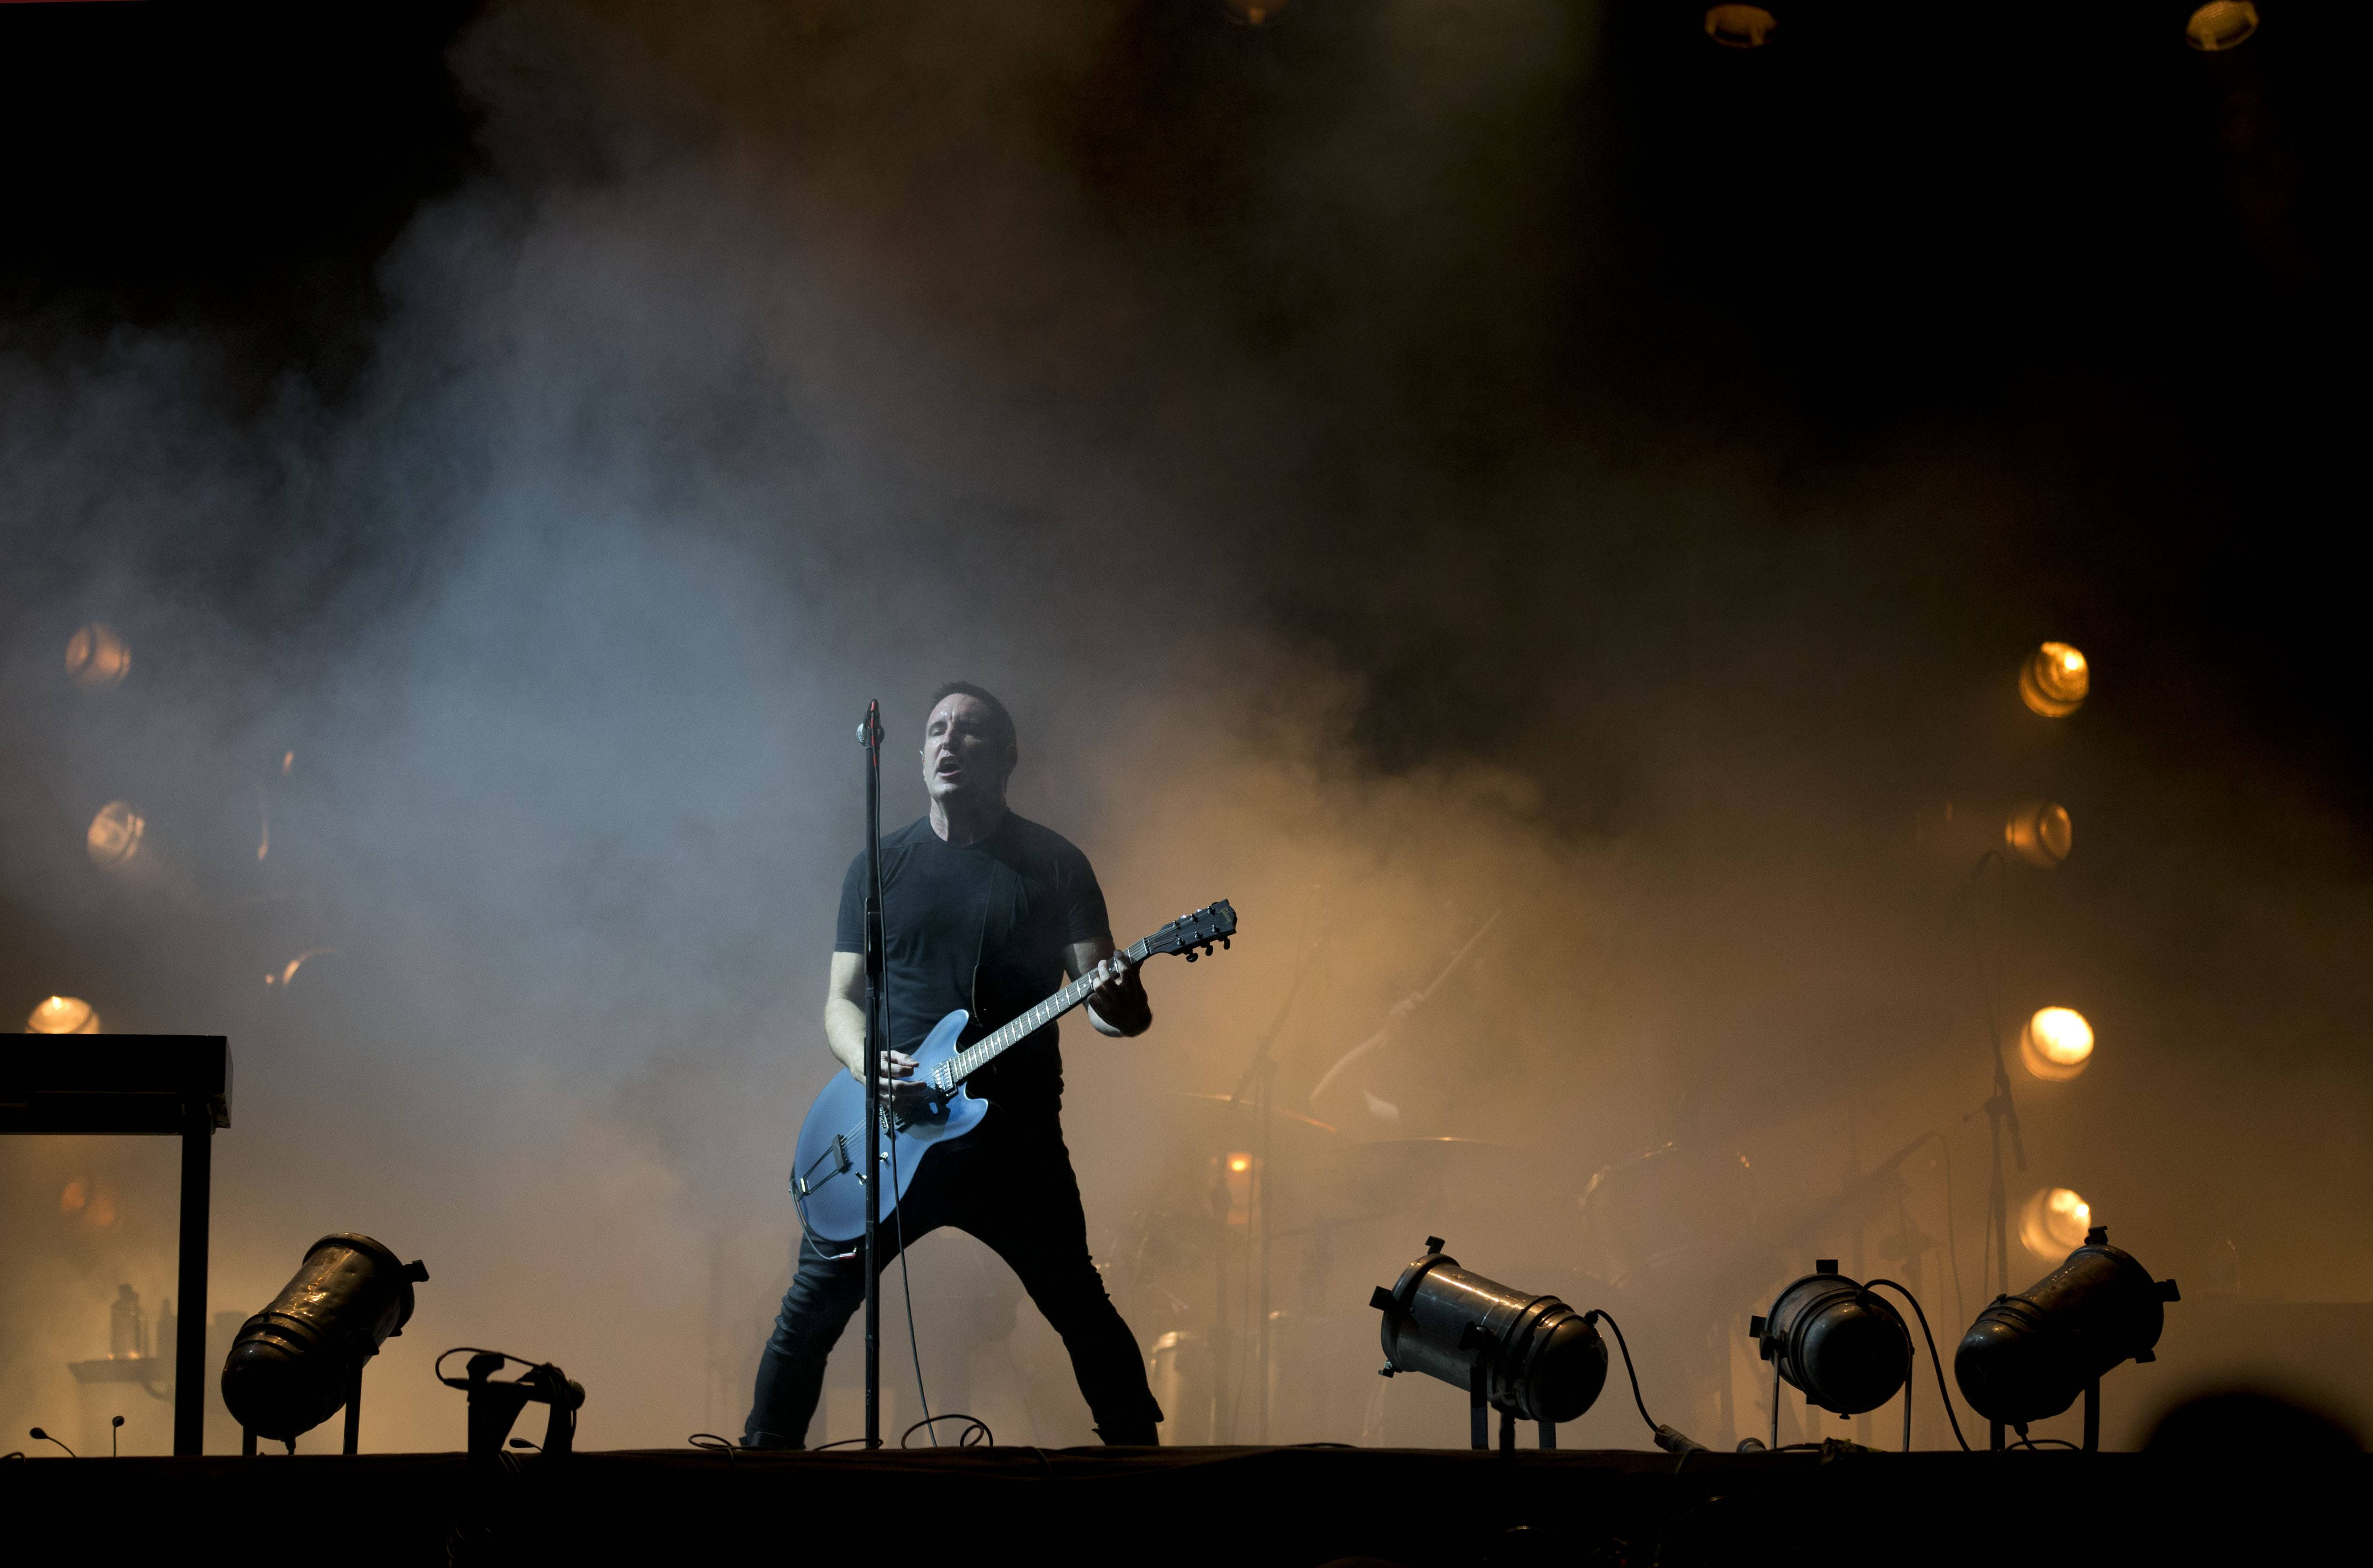 Trent Reznor and his band, Nine Inch Nails, shown here performing at the Vive Latino music festival in Mexico City, Mexico, in March, are currently on a North America tour co-headlining with Soundgarden. The tour comes to the First Midwest Bank Amphitheatre in Tinley Park on Thursday, July 24.